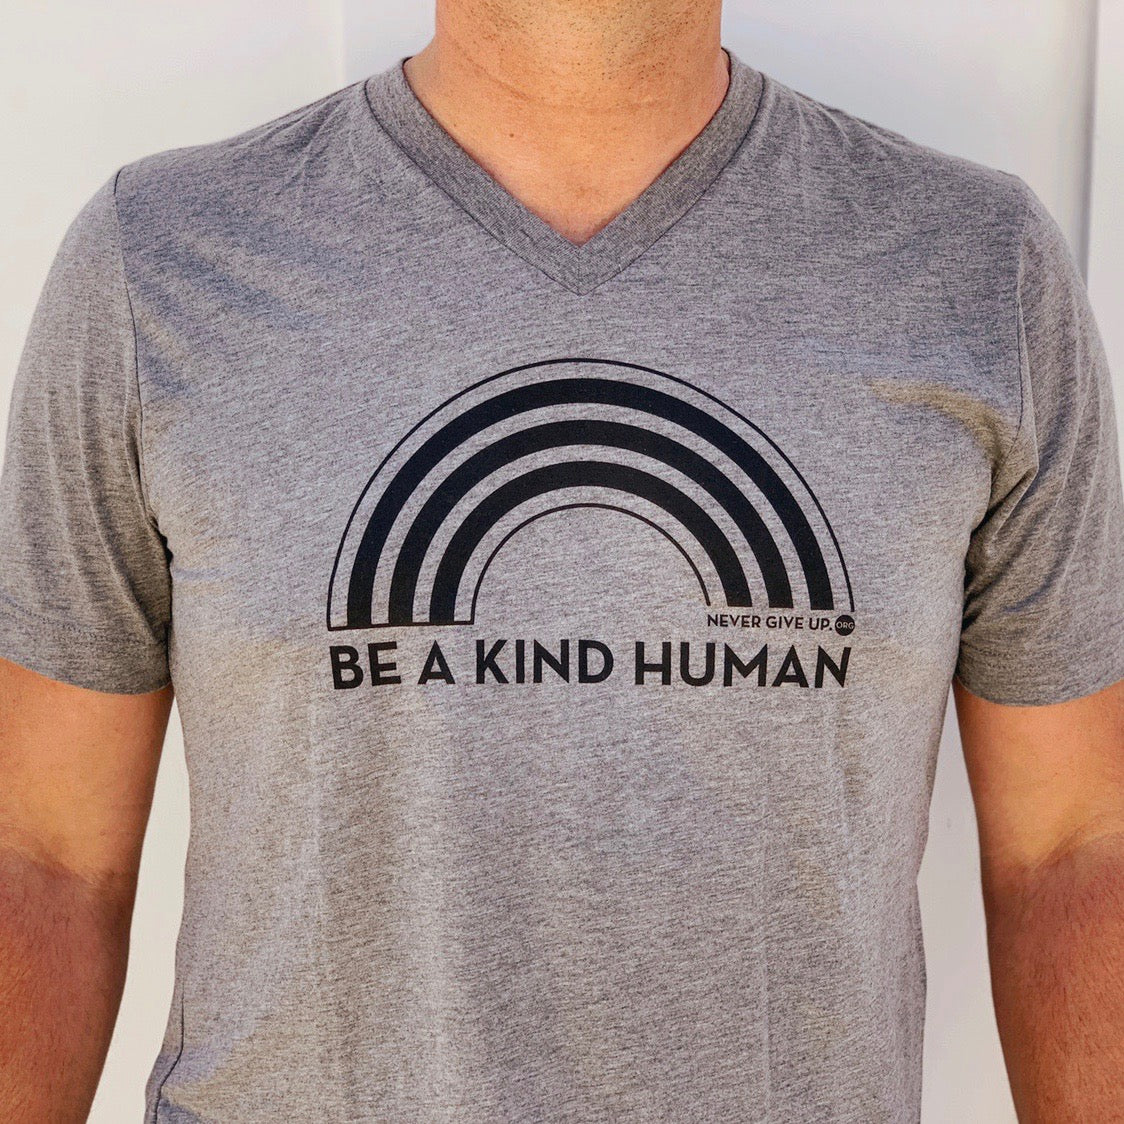 BE A KIND HUMAN UNISEX VNECK